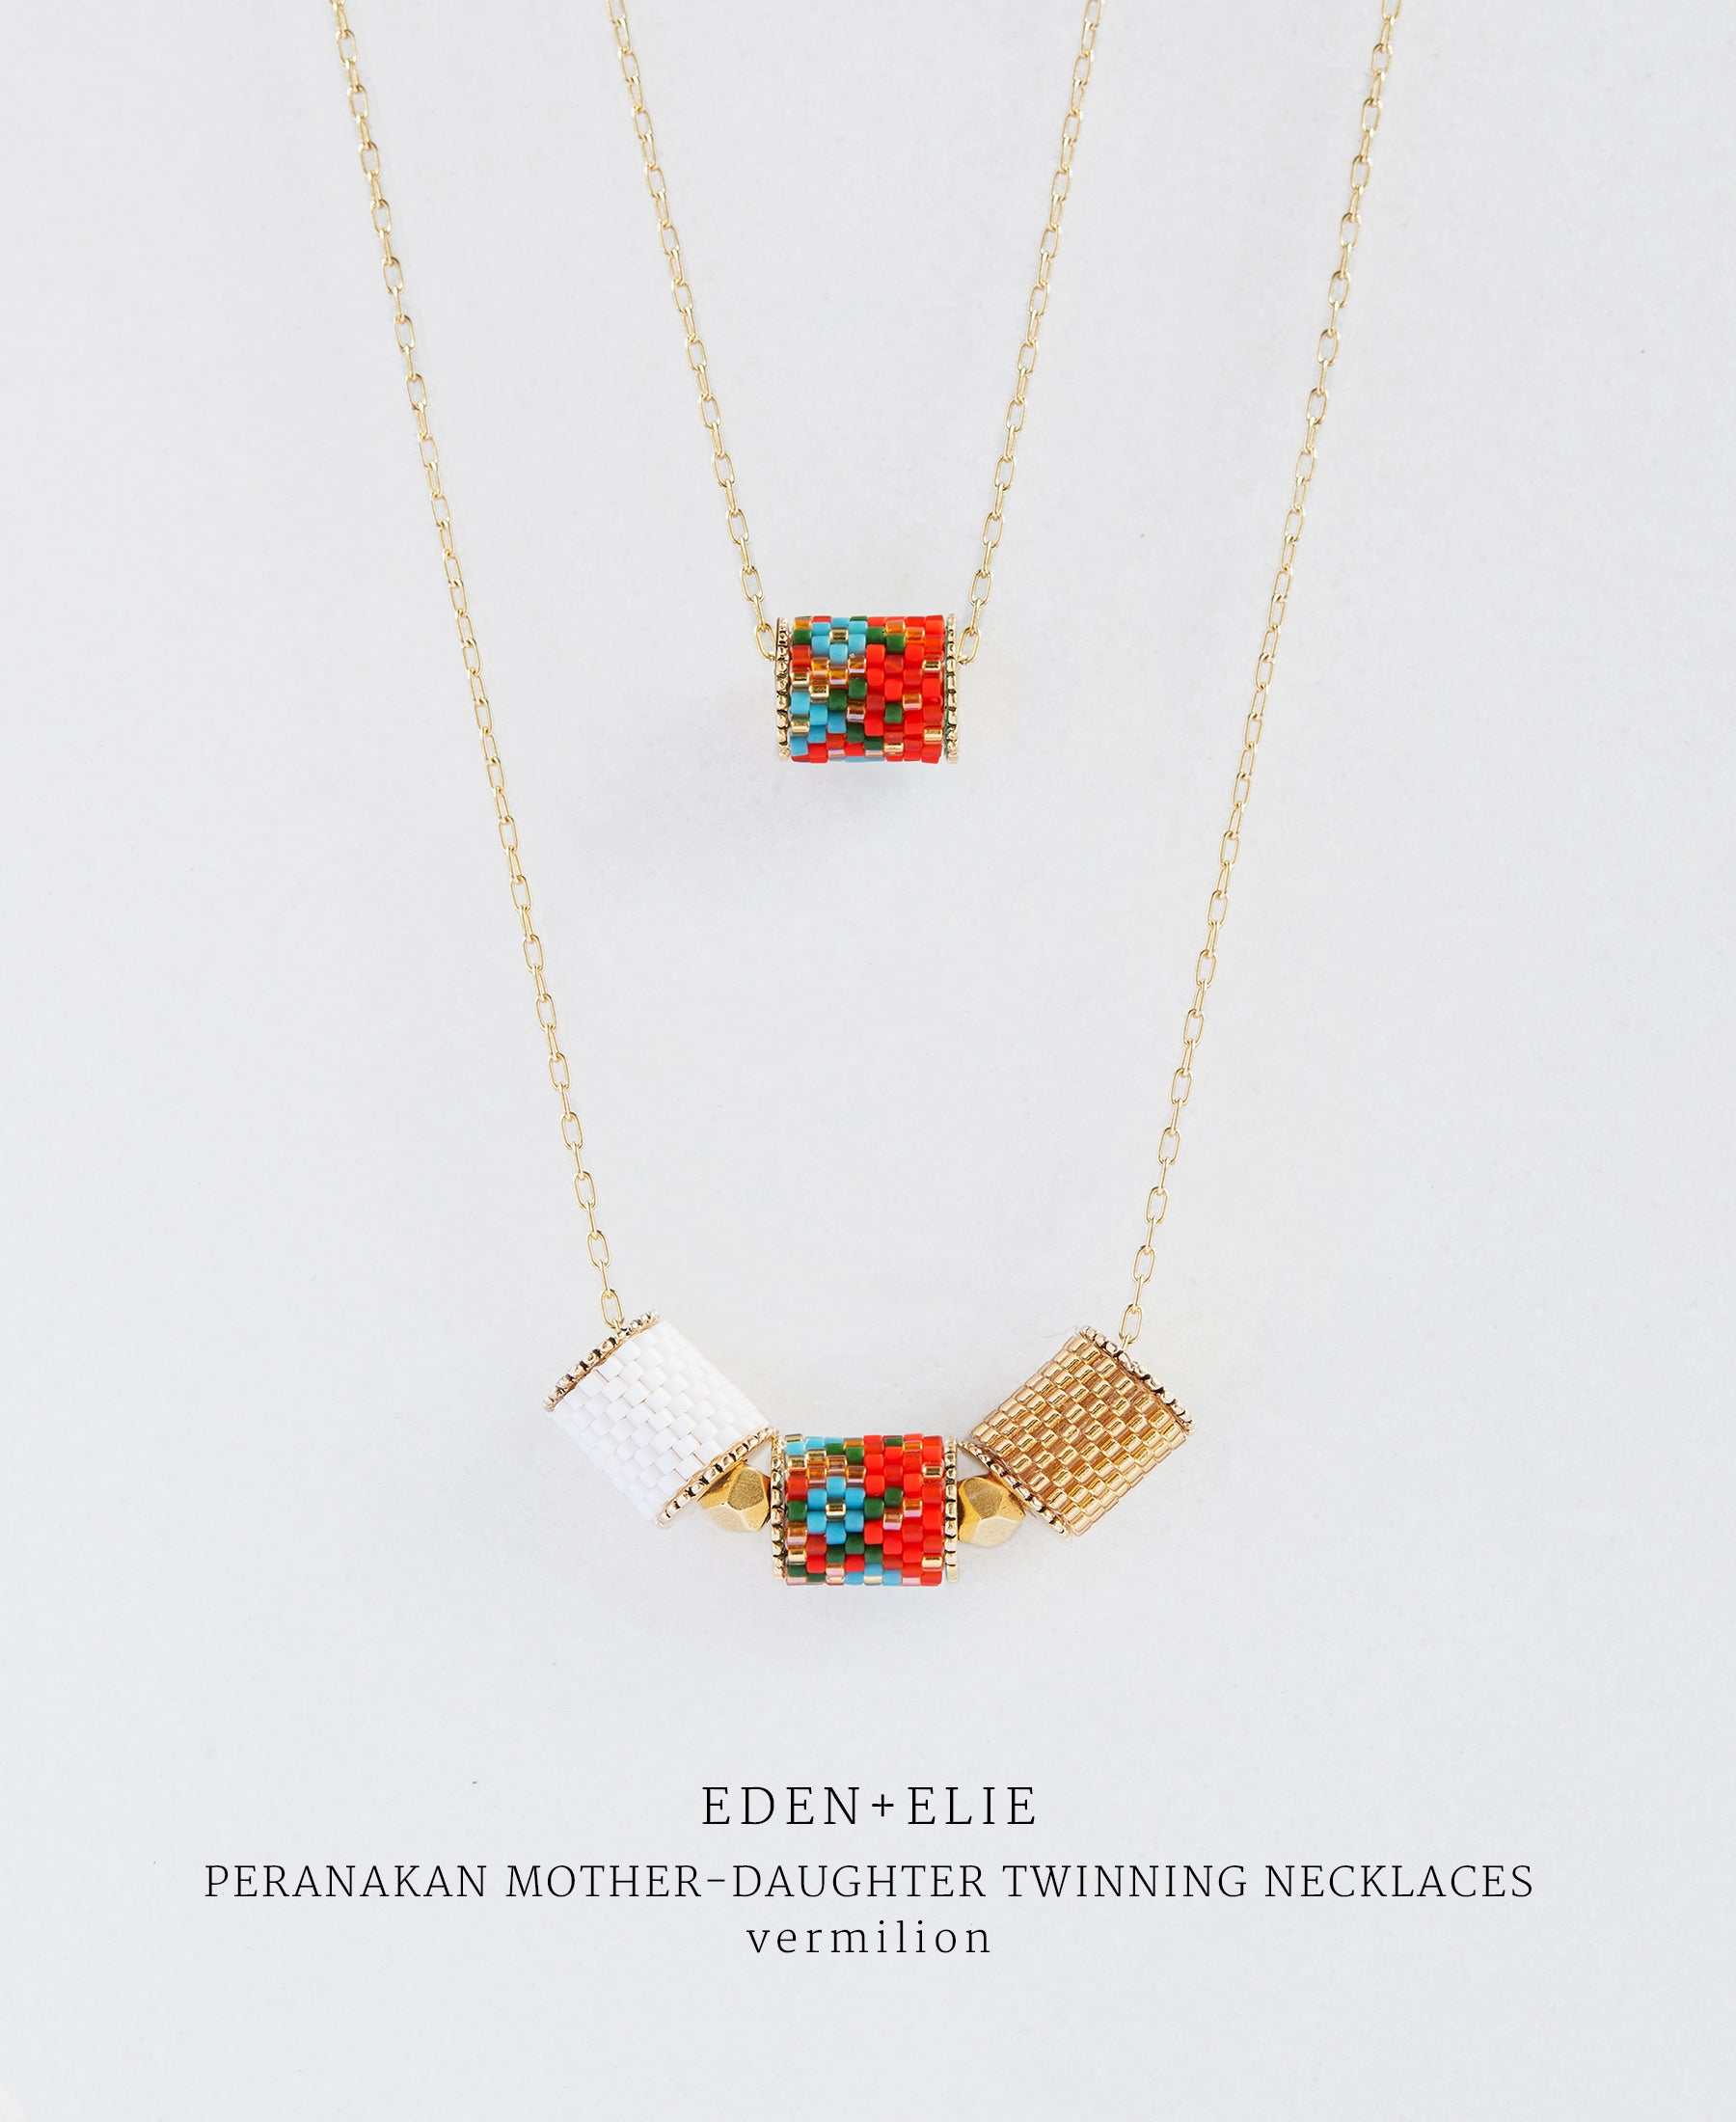 EDEN + ELIE Mother-Daughter twinning necklaces set - peranakan vermilion